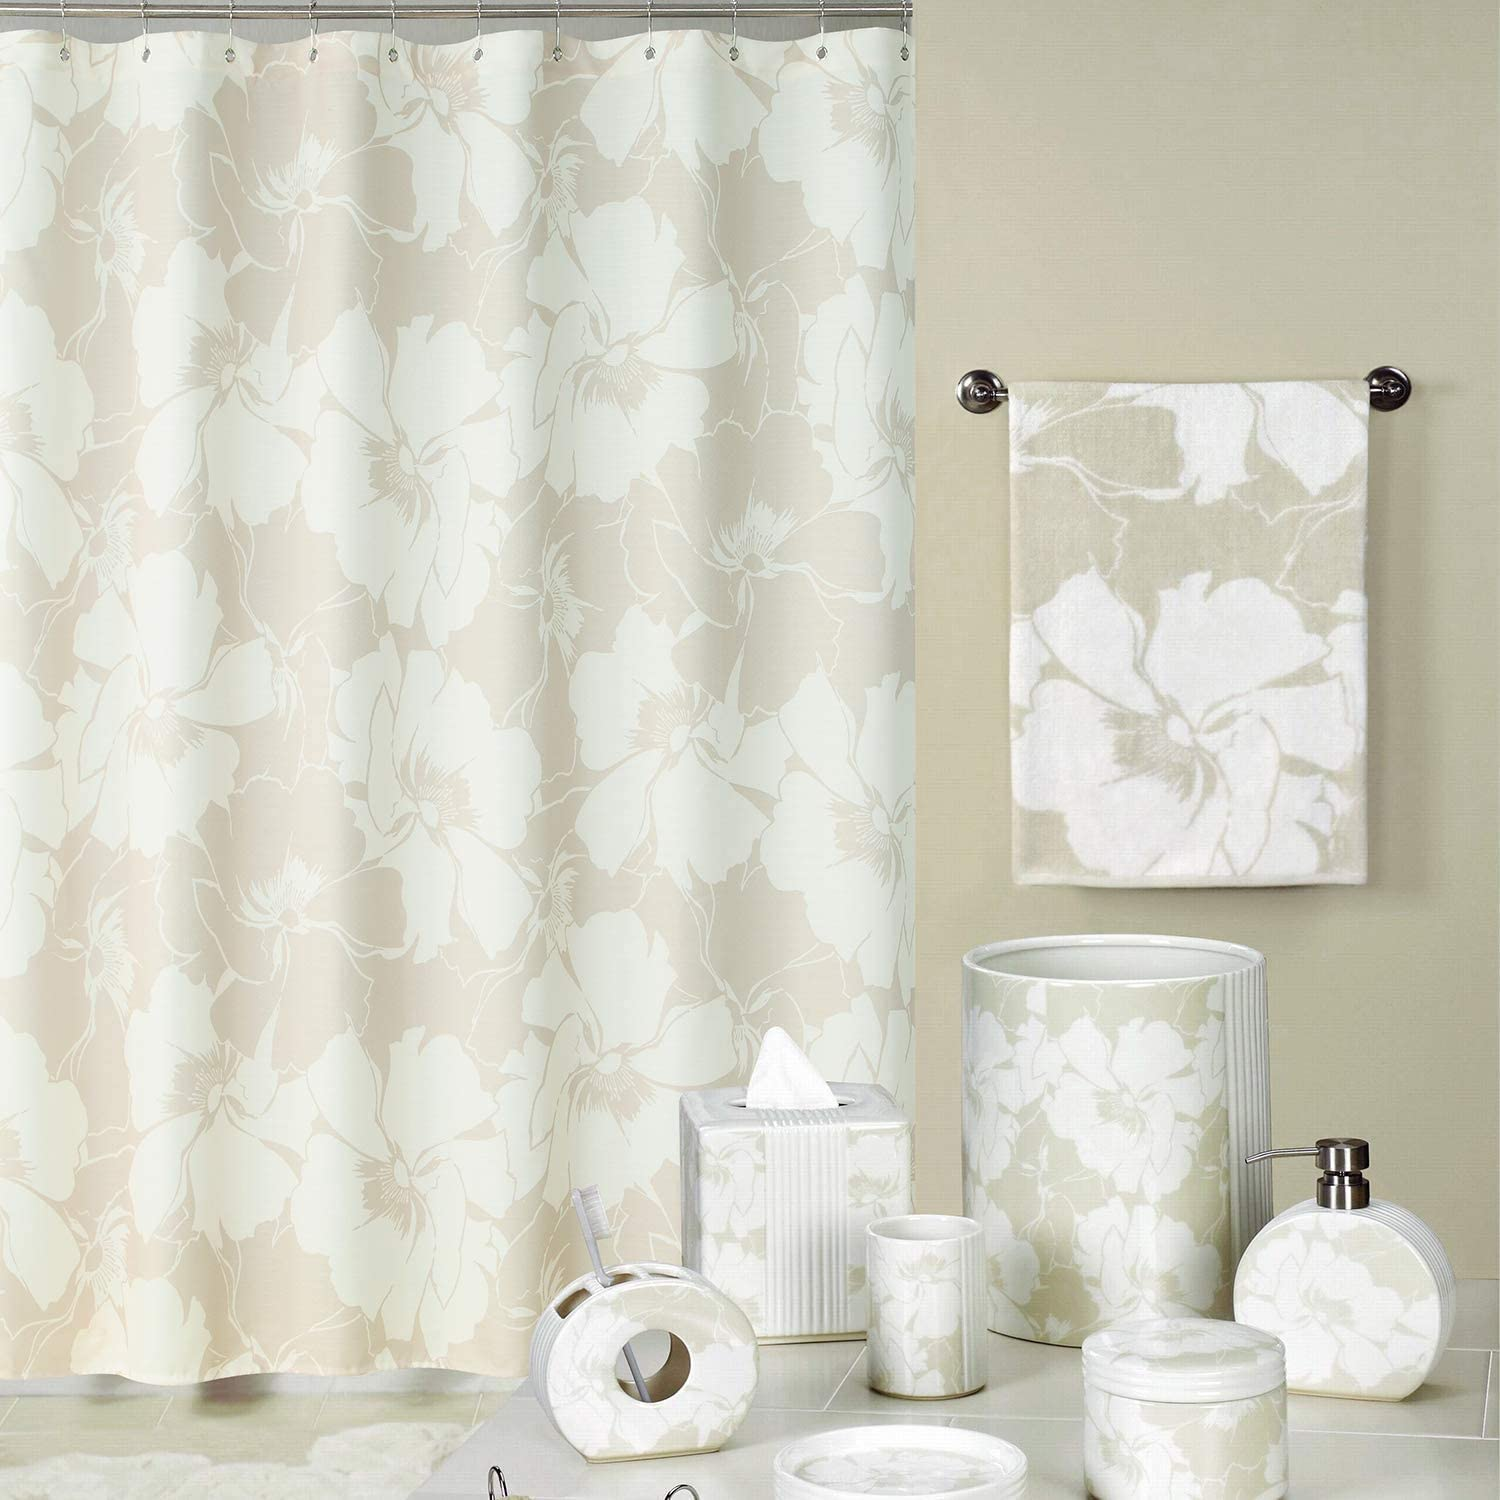 DC Curtain Graphic Floral Cash special price Polyester Japan Maker New Waterproof Fabric Cre Leaves